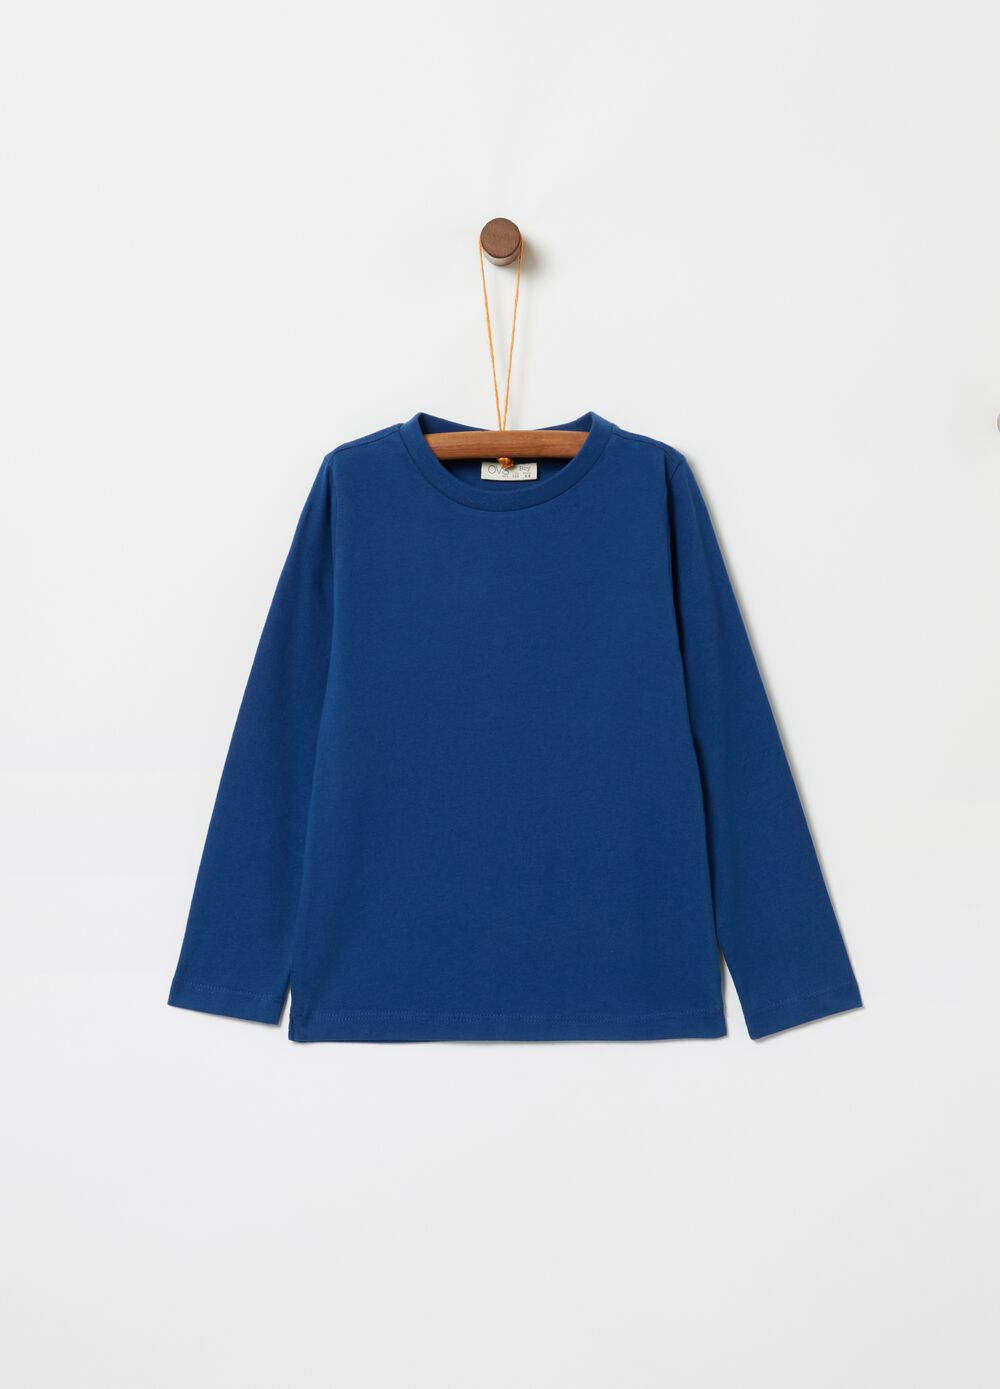 100% organic cotton T-shirt with long sleeves